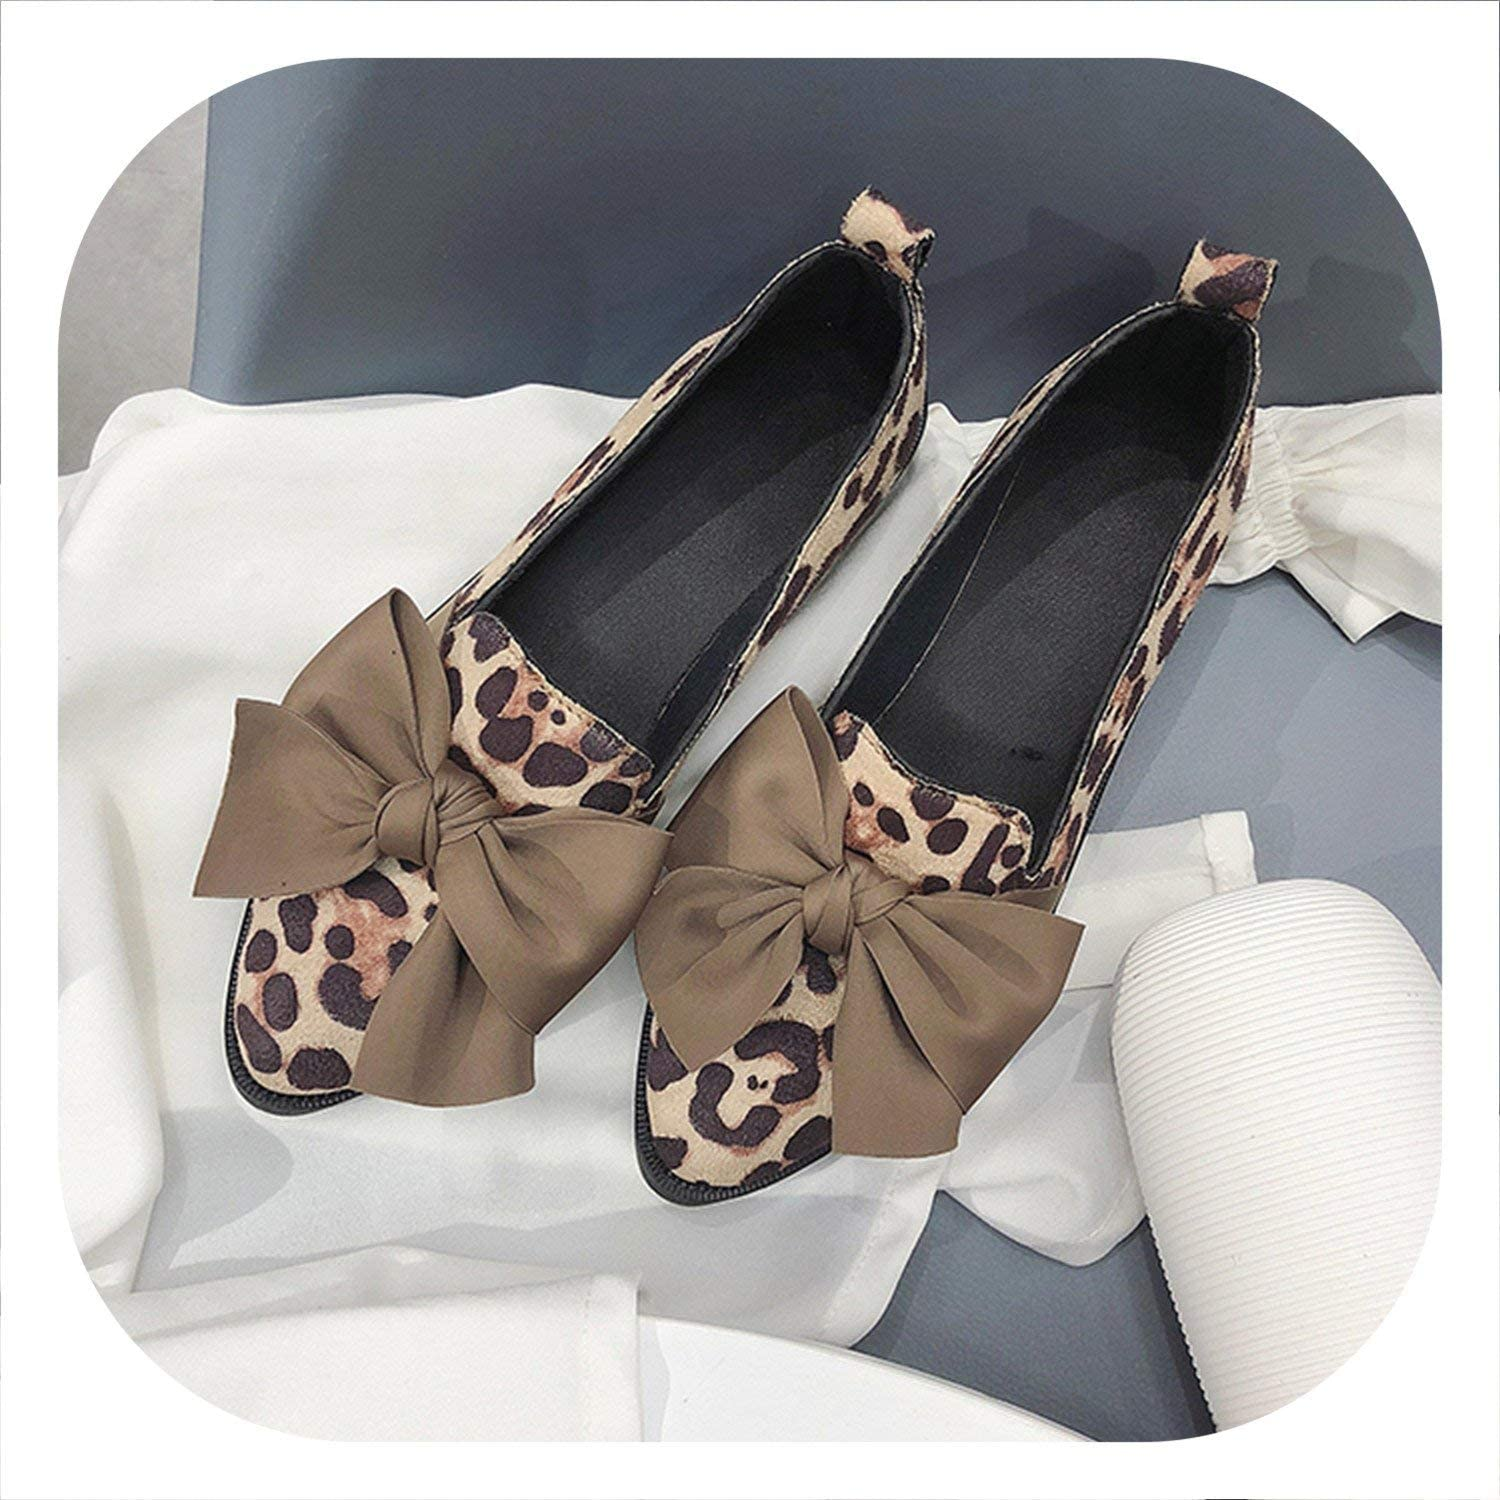 White Island 2019 Classic Brand Flats Casual shoes Women Bowknot Loafers Sexy Leopard Oxford Slip On Moccasins Female Suede Leather Footwear